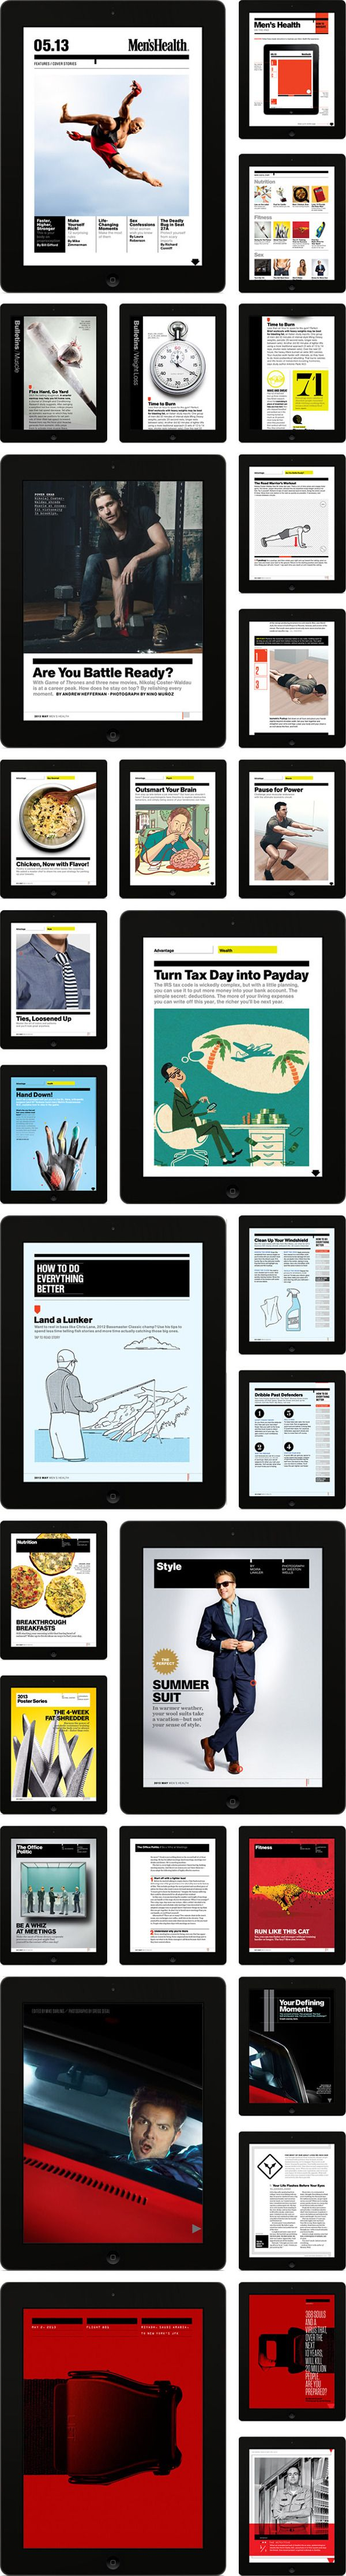 Men's Health iPad by Chris Carbo, via Behance